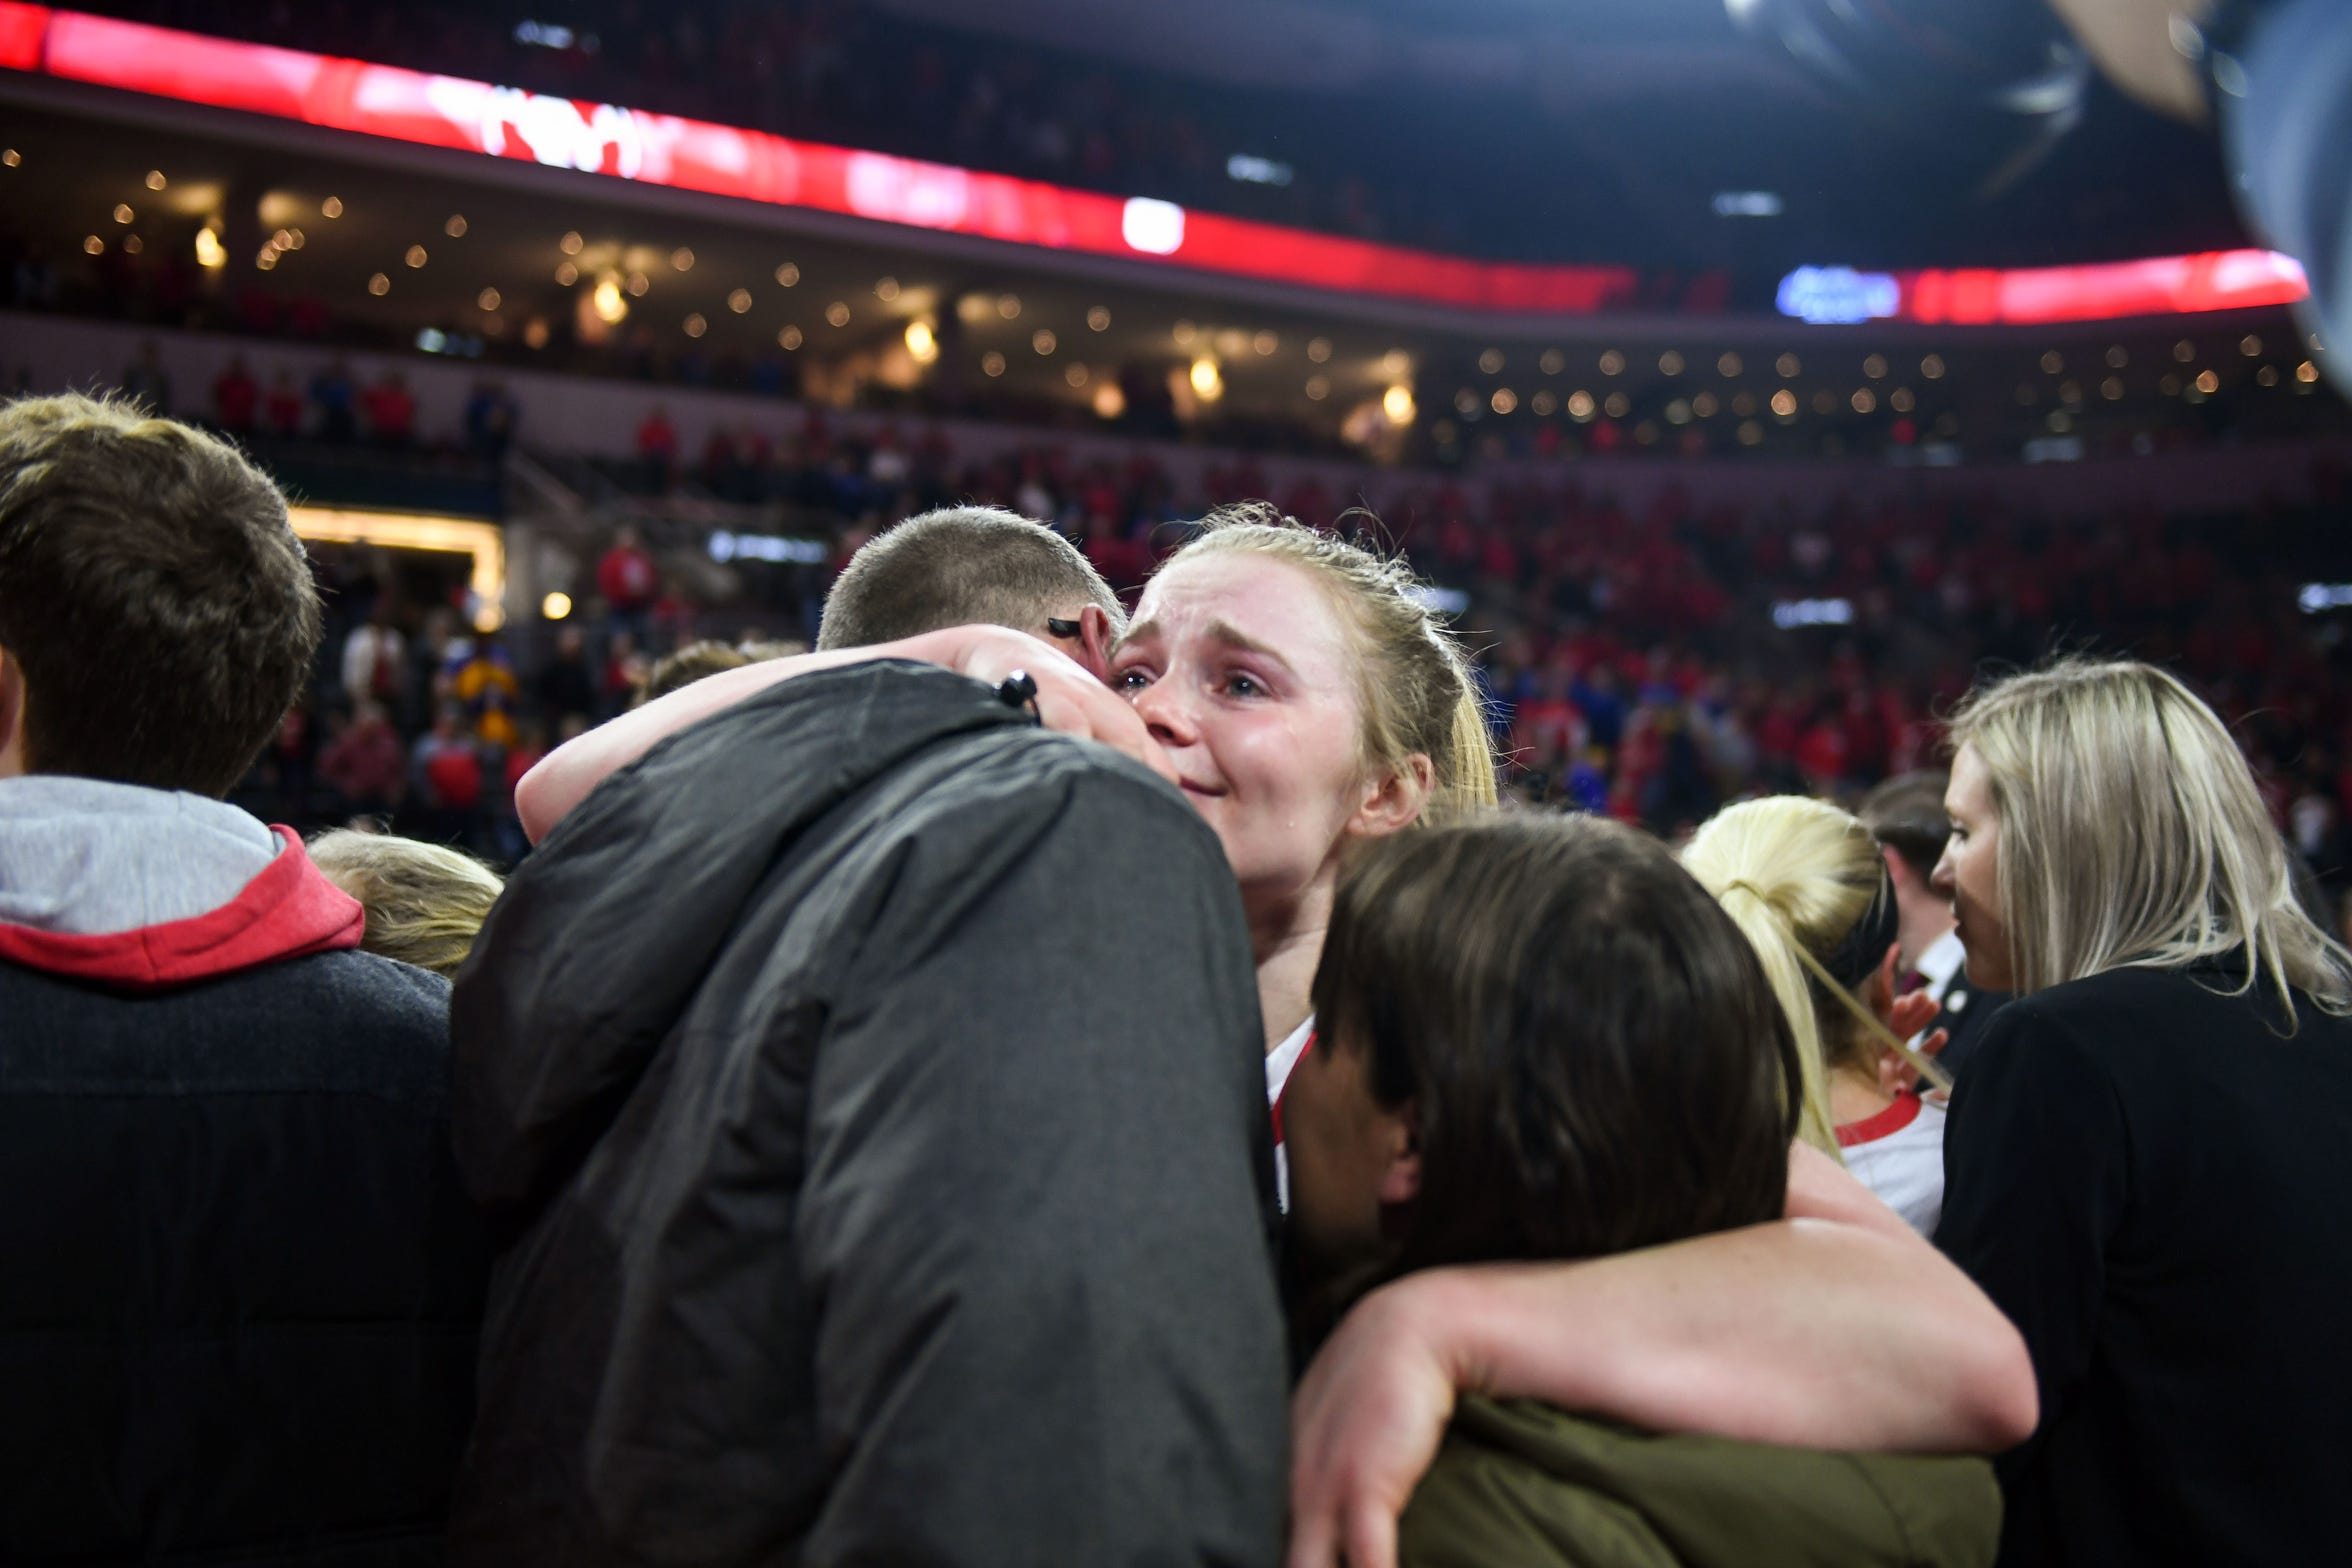 USD's Monica Arens smiles through tears as she hugs her parents after the team's Summit League championship win on Tuesday, March 10, at the Denny Sanford Premier Center in Sioux Falls.